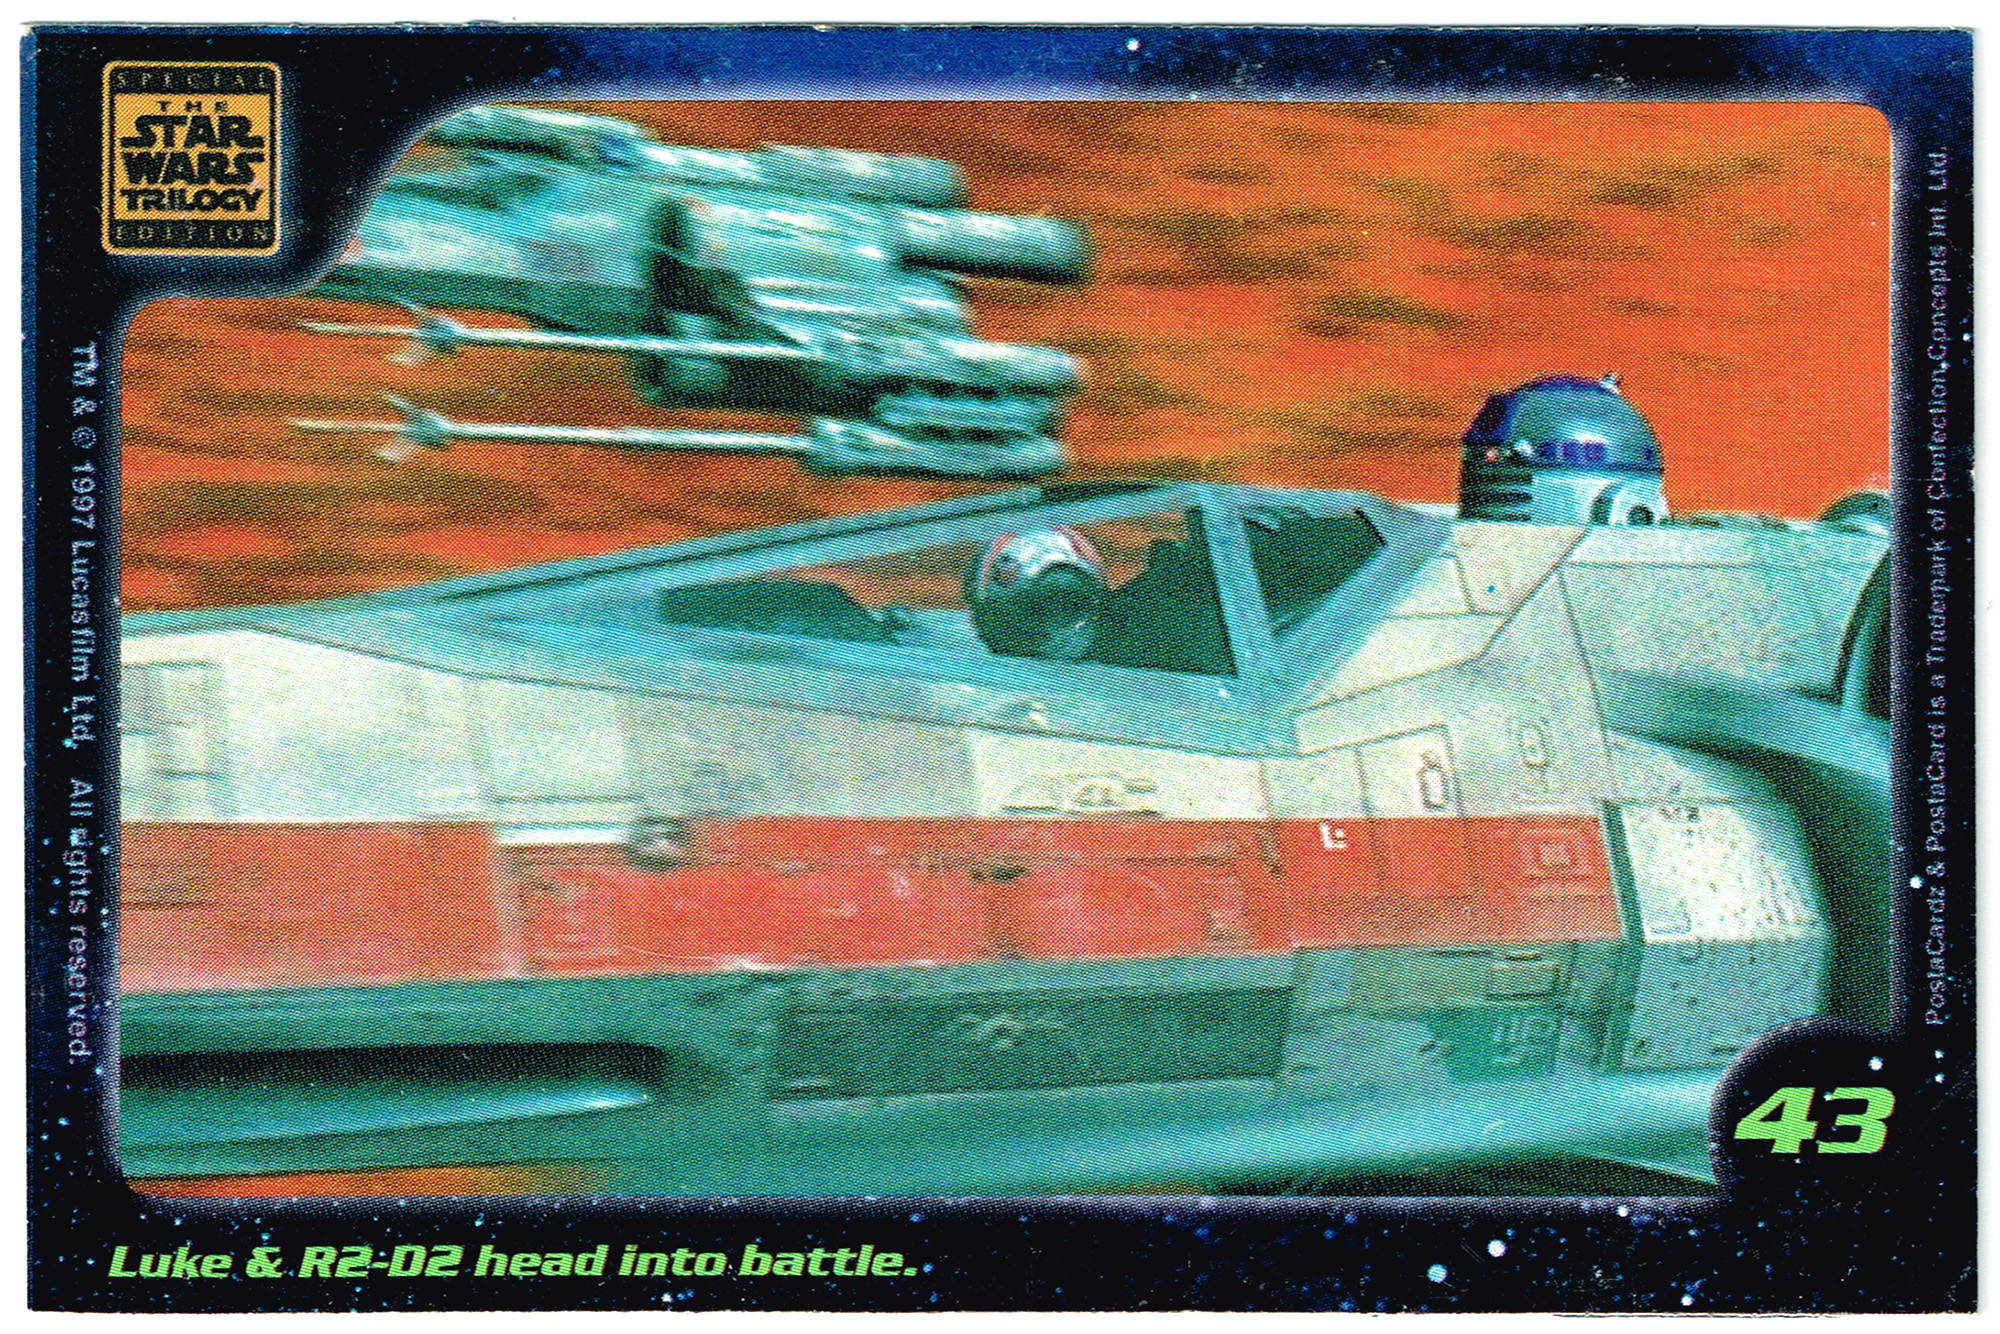 Confection Concepts Star Wars Card 43